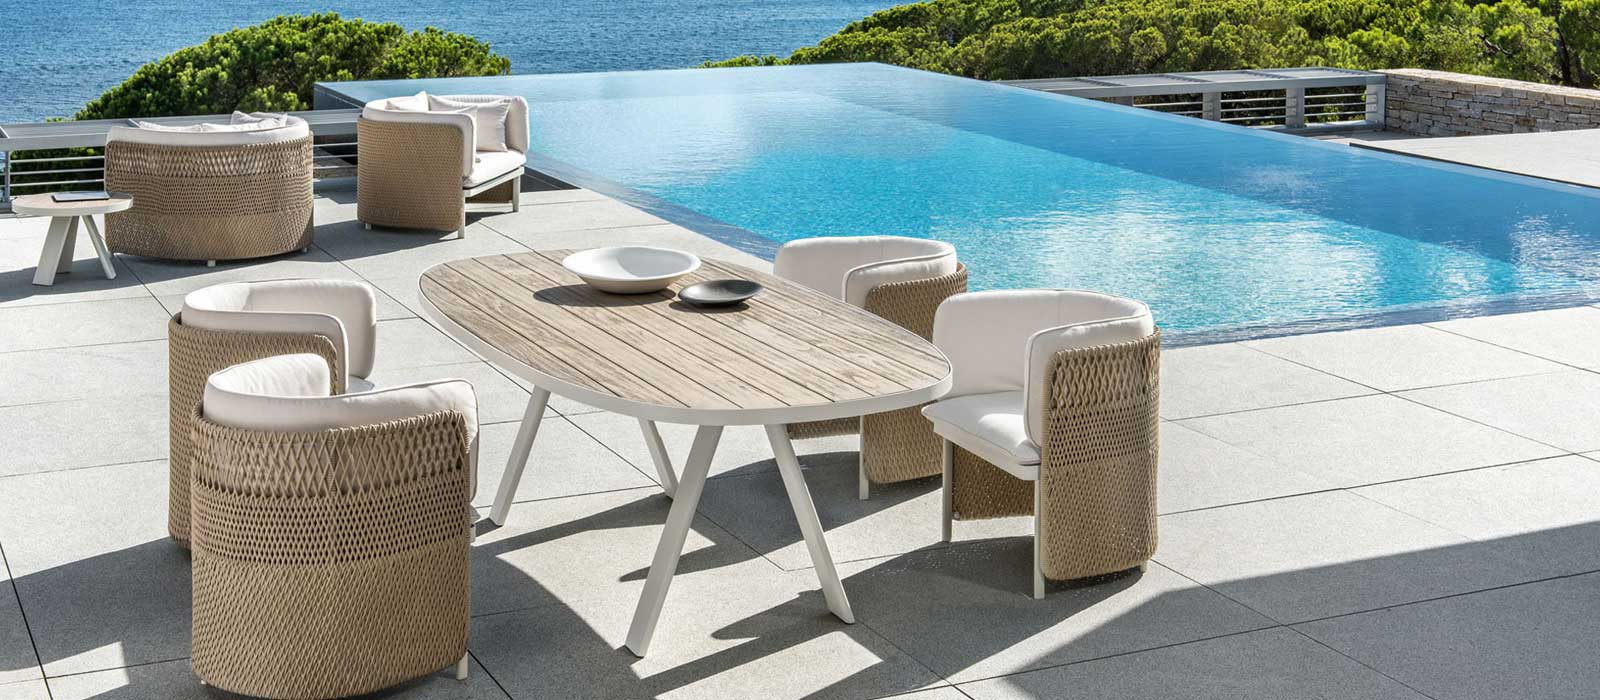 Poolside Furniture Manufacturers in Gujarat